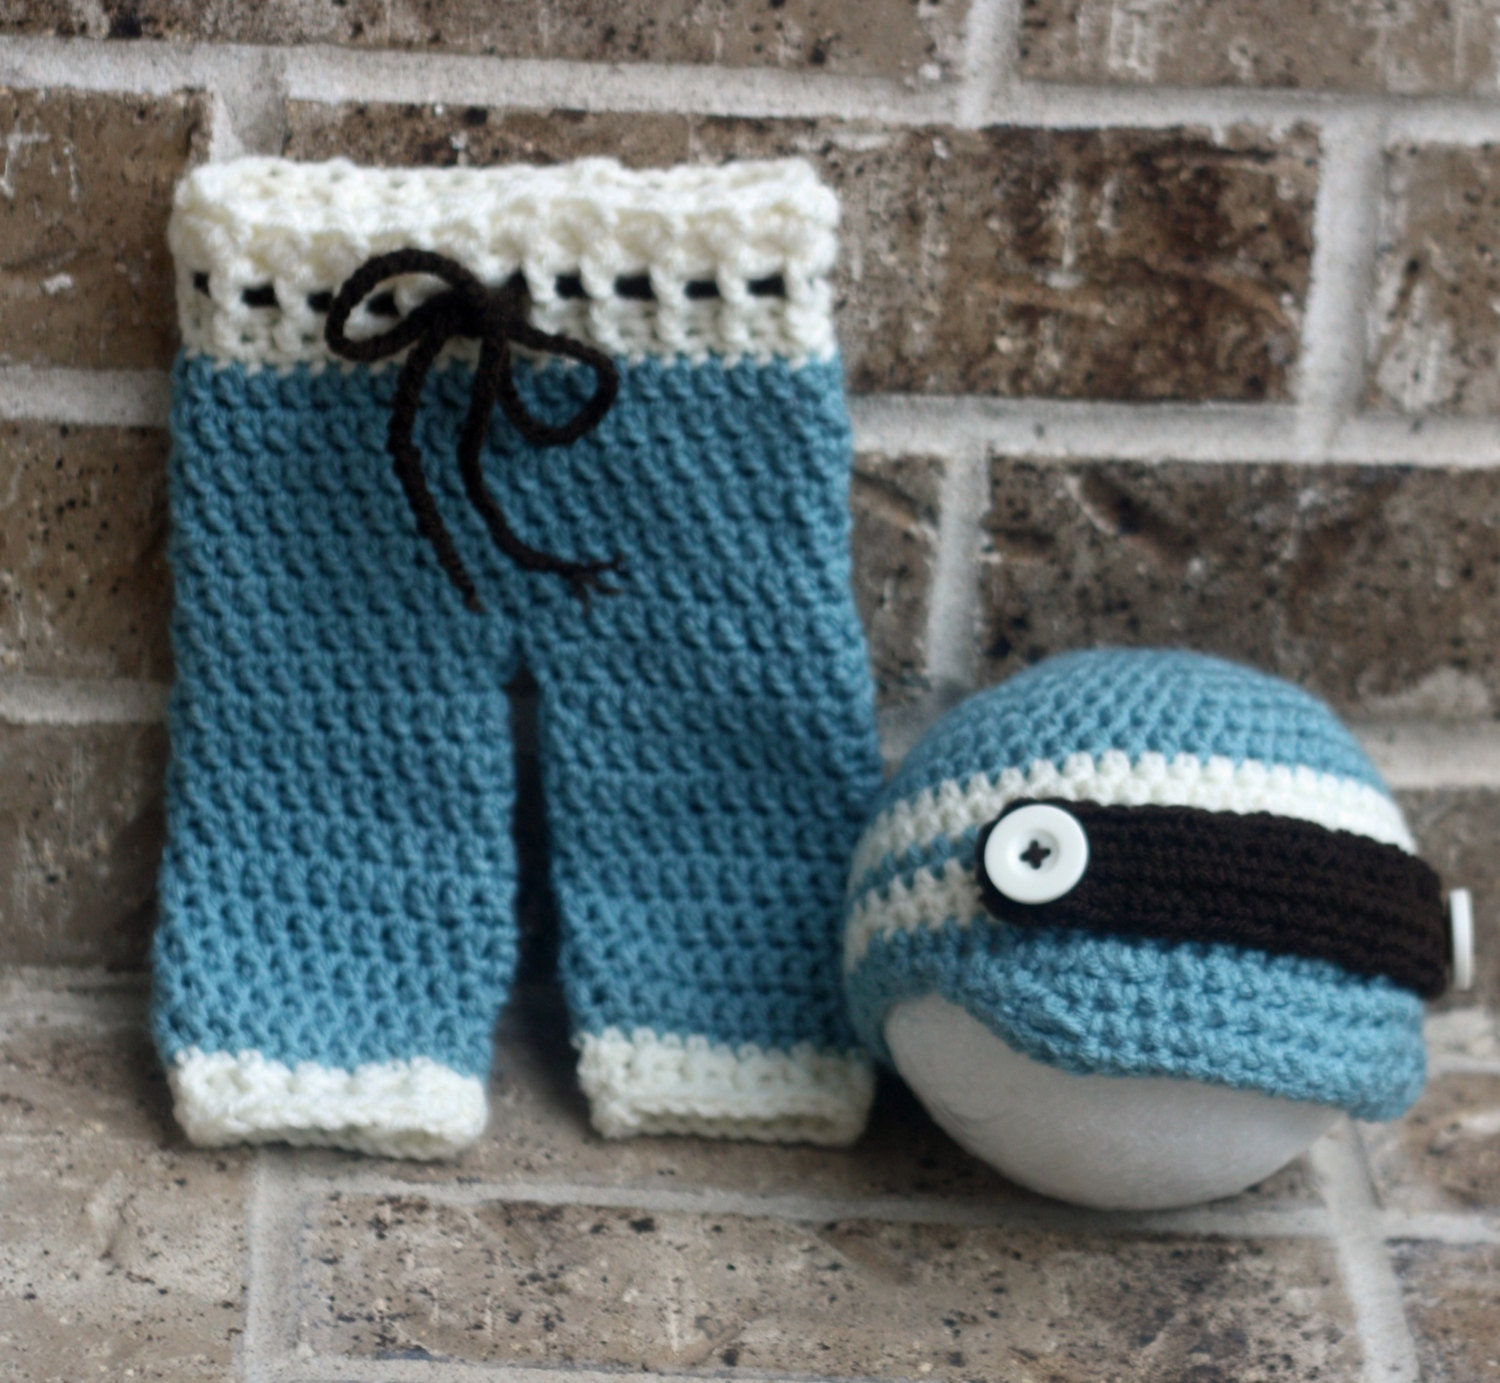 Cute crochet baby pants pattern, for baby boys or baby girls. *Disclosure. Need a way to keep a baby warm? these baby pants are a quick project and very easy to follow.